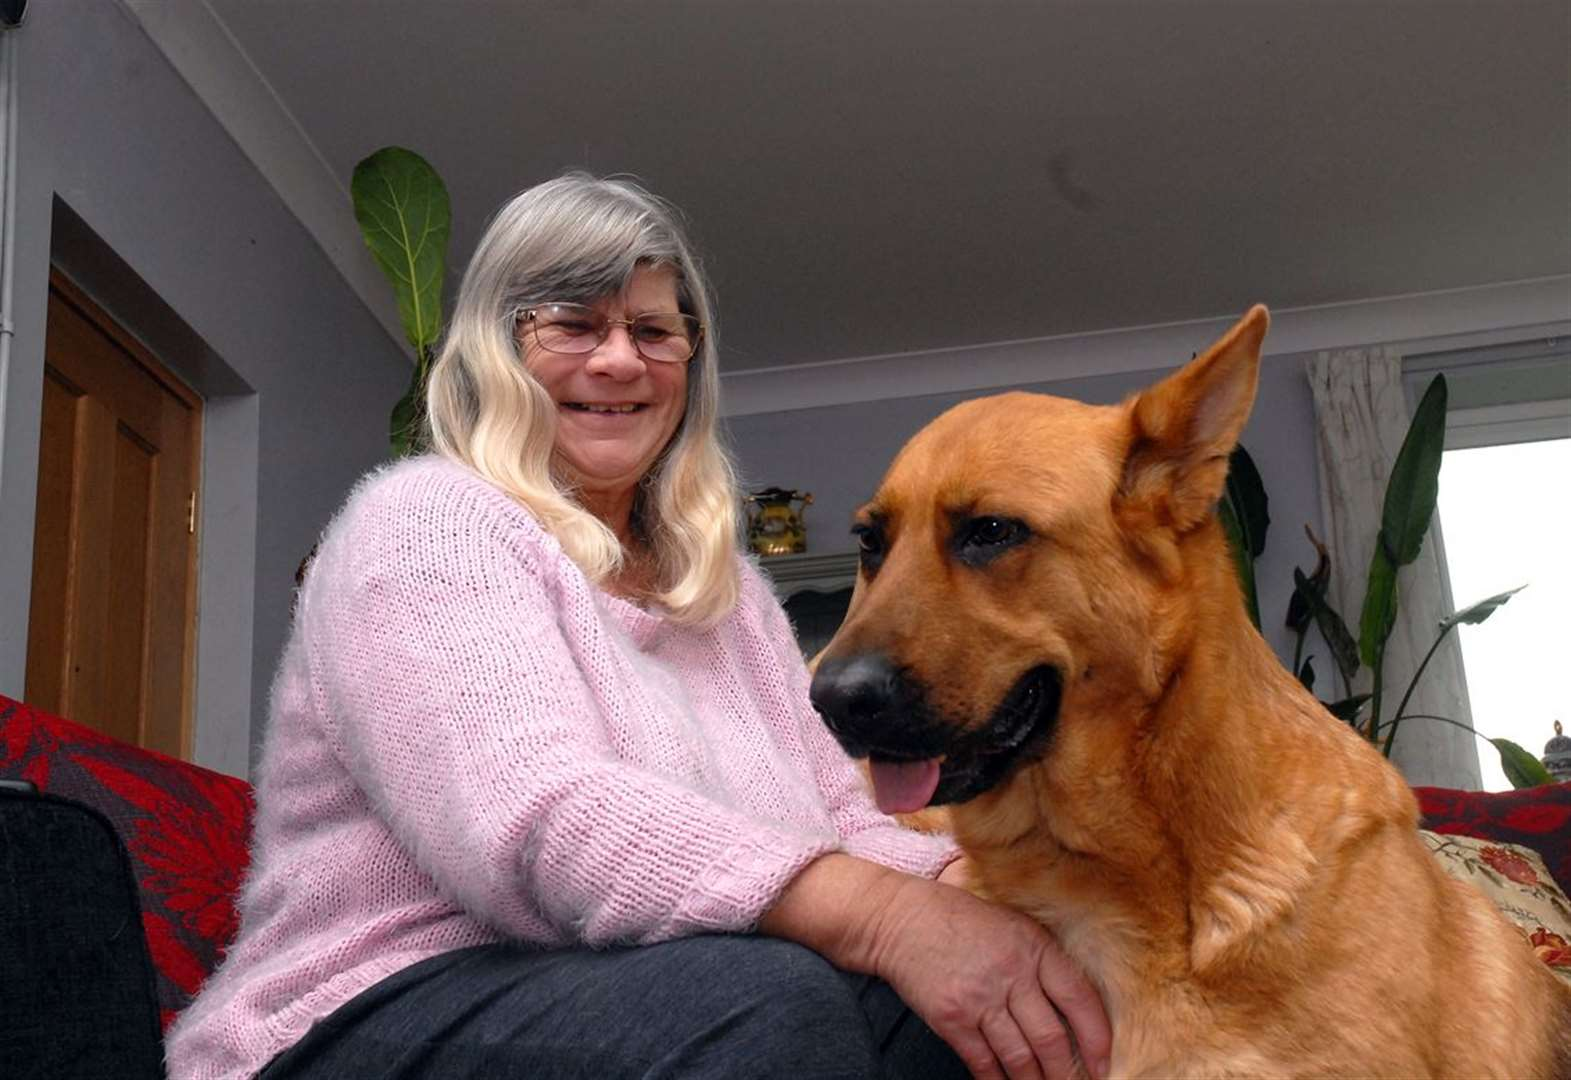 Dog saves owner from slipping into coma